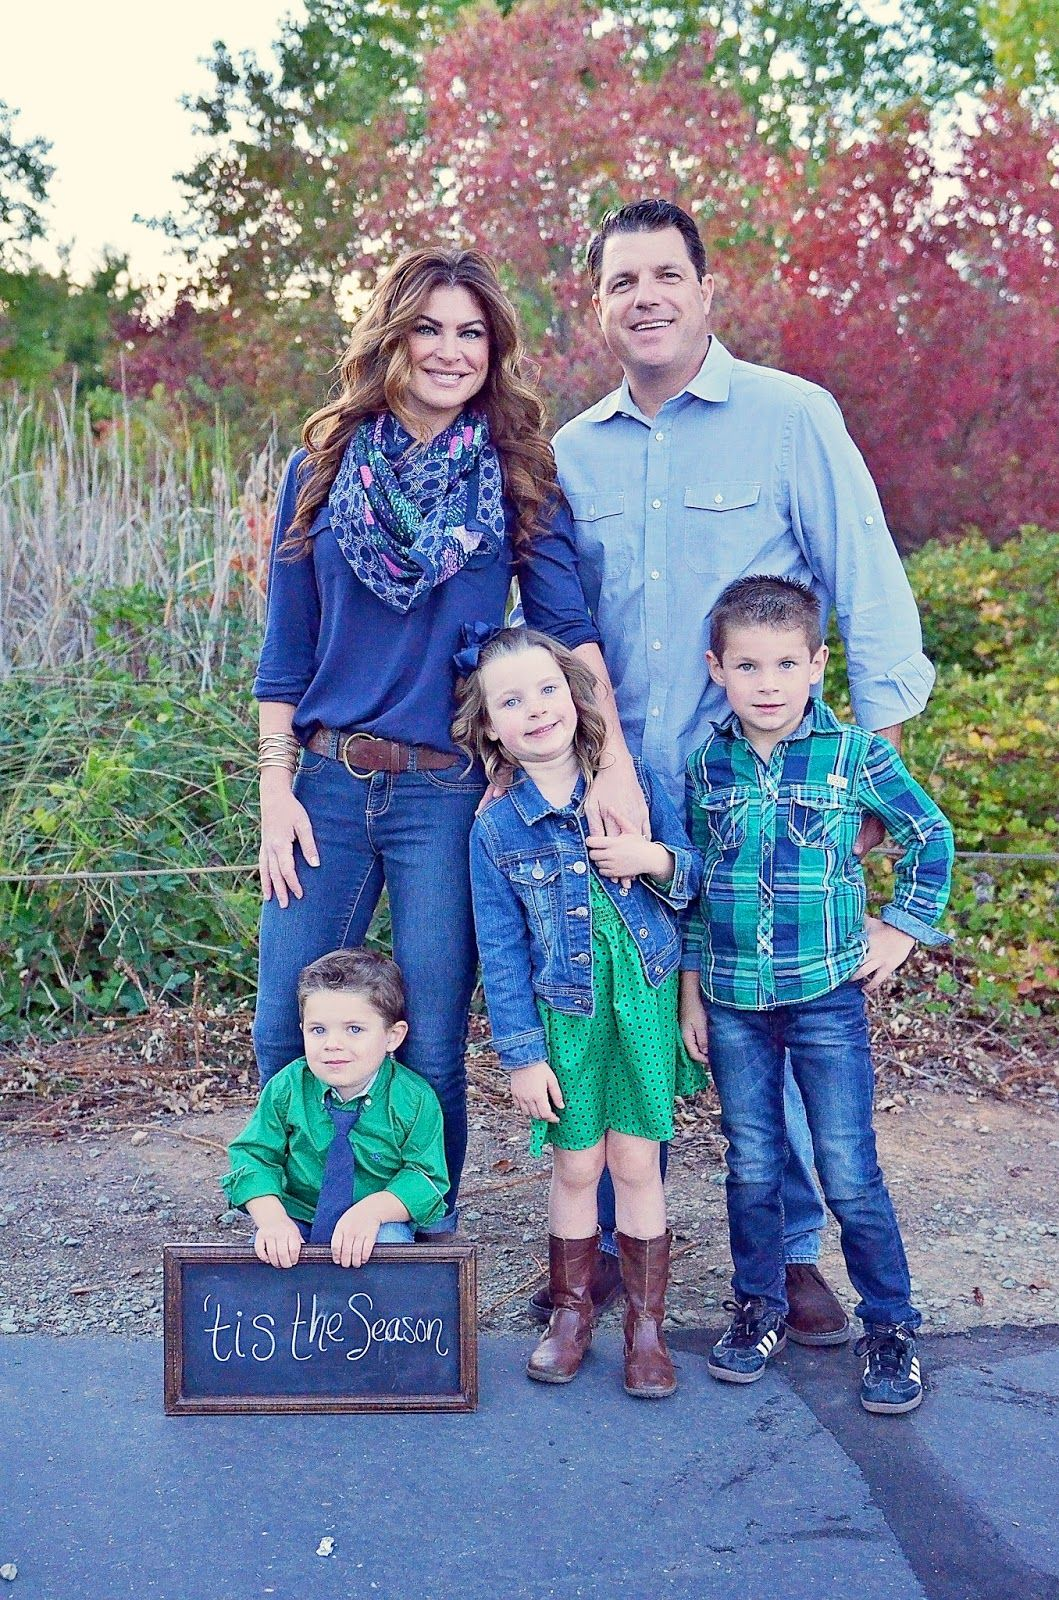 Fall Family Photos What To Wear 2015 California